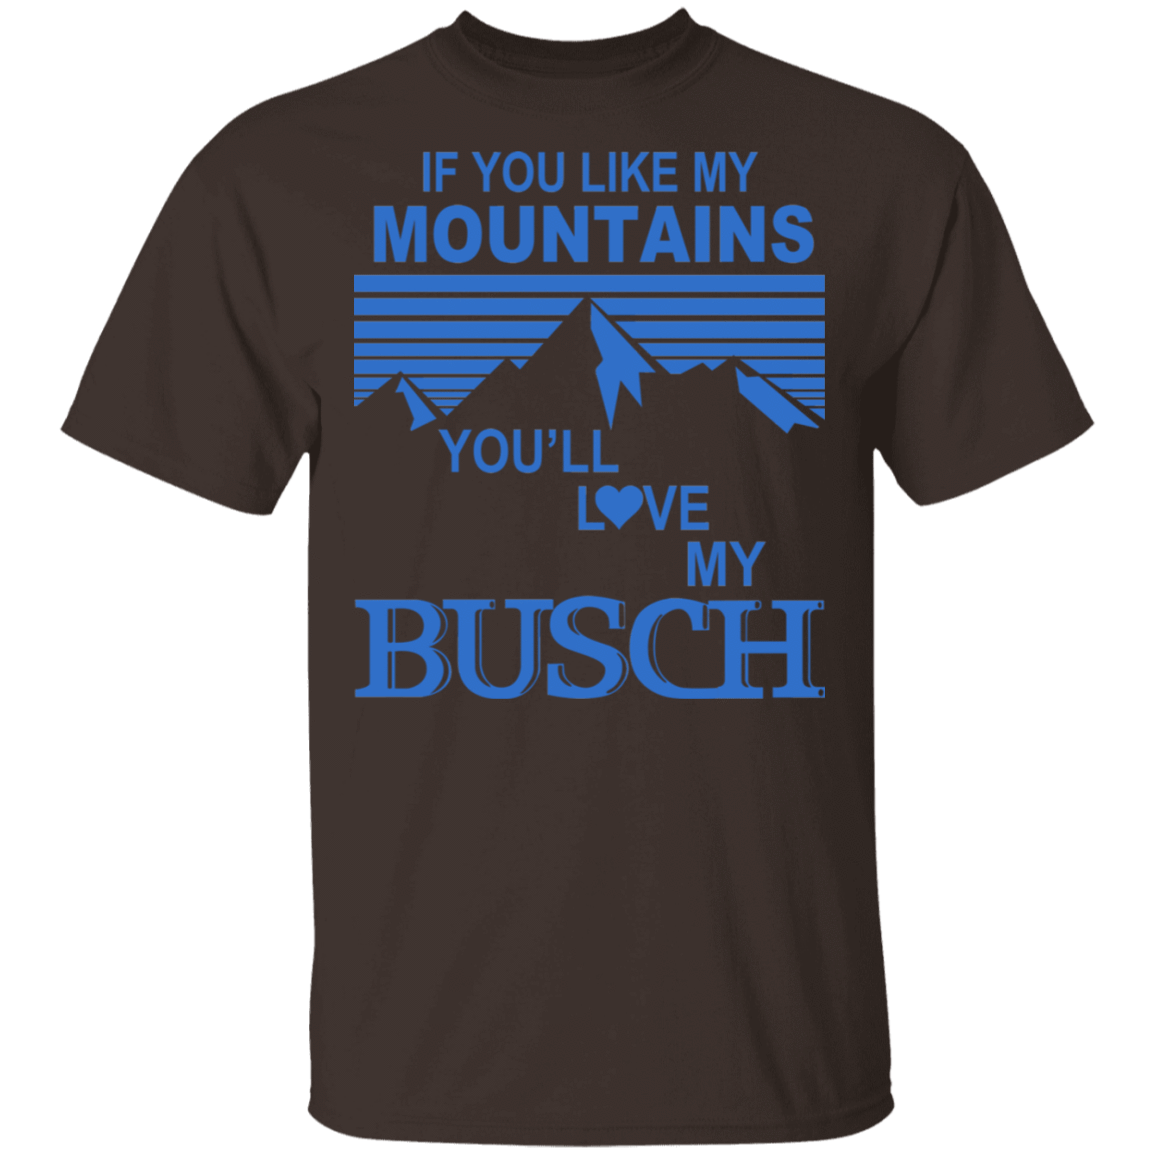 If You Like Mountains You'll Love My Busch T-Shirts, Hoodies, Tank 22-2283-79808368-12087 - Tee Ript